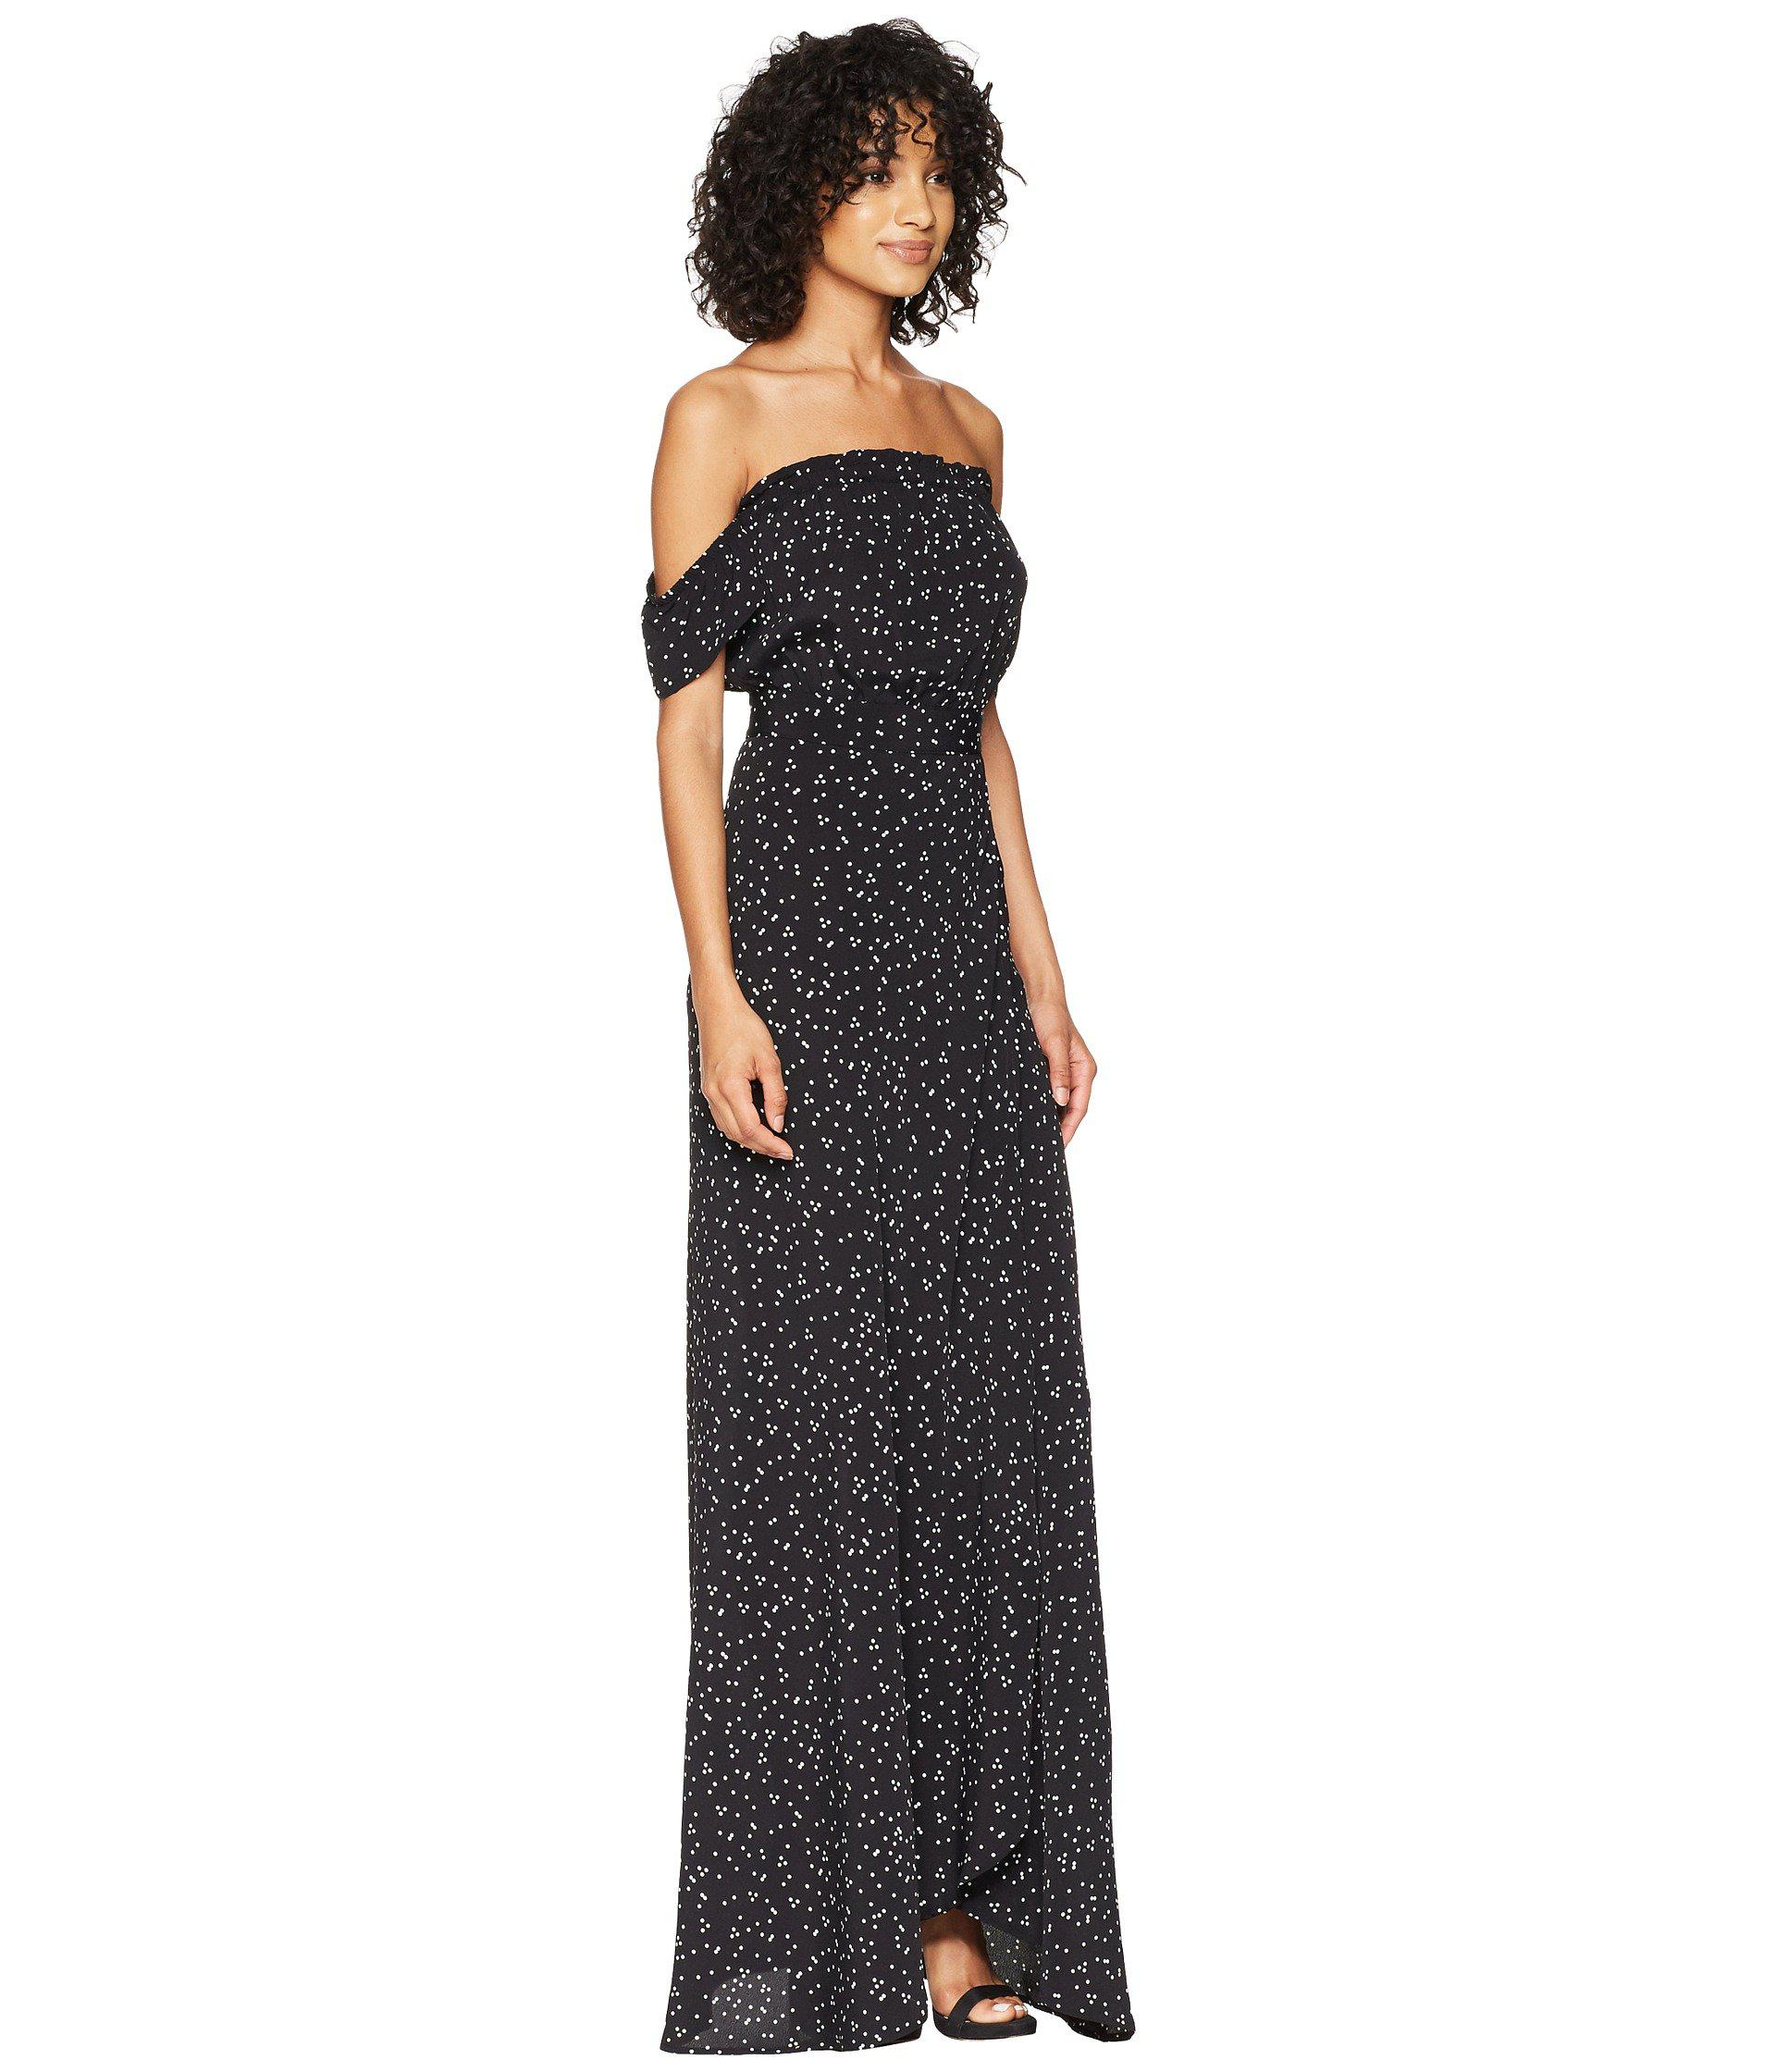 3d0668f3651 Lyst - Flynn Skye Bella Maxi Dress in Black